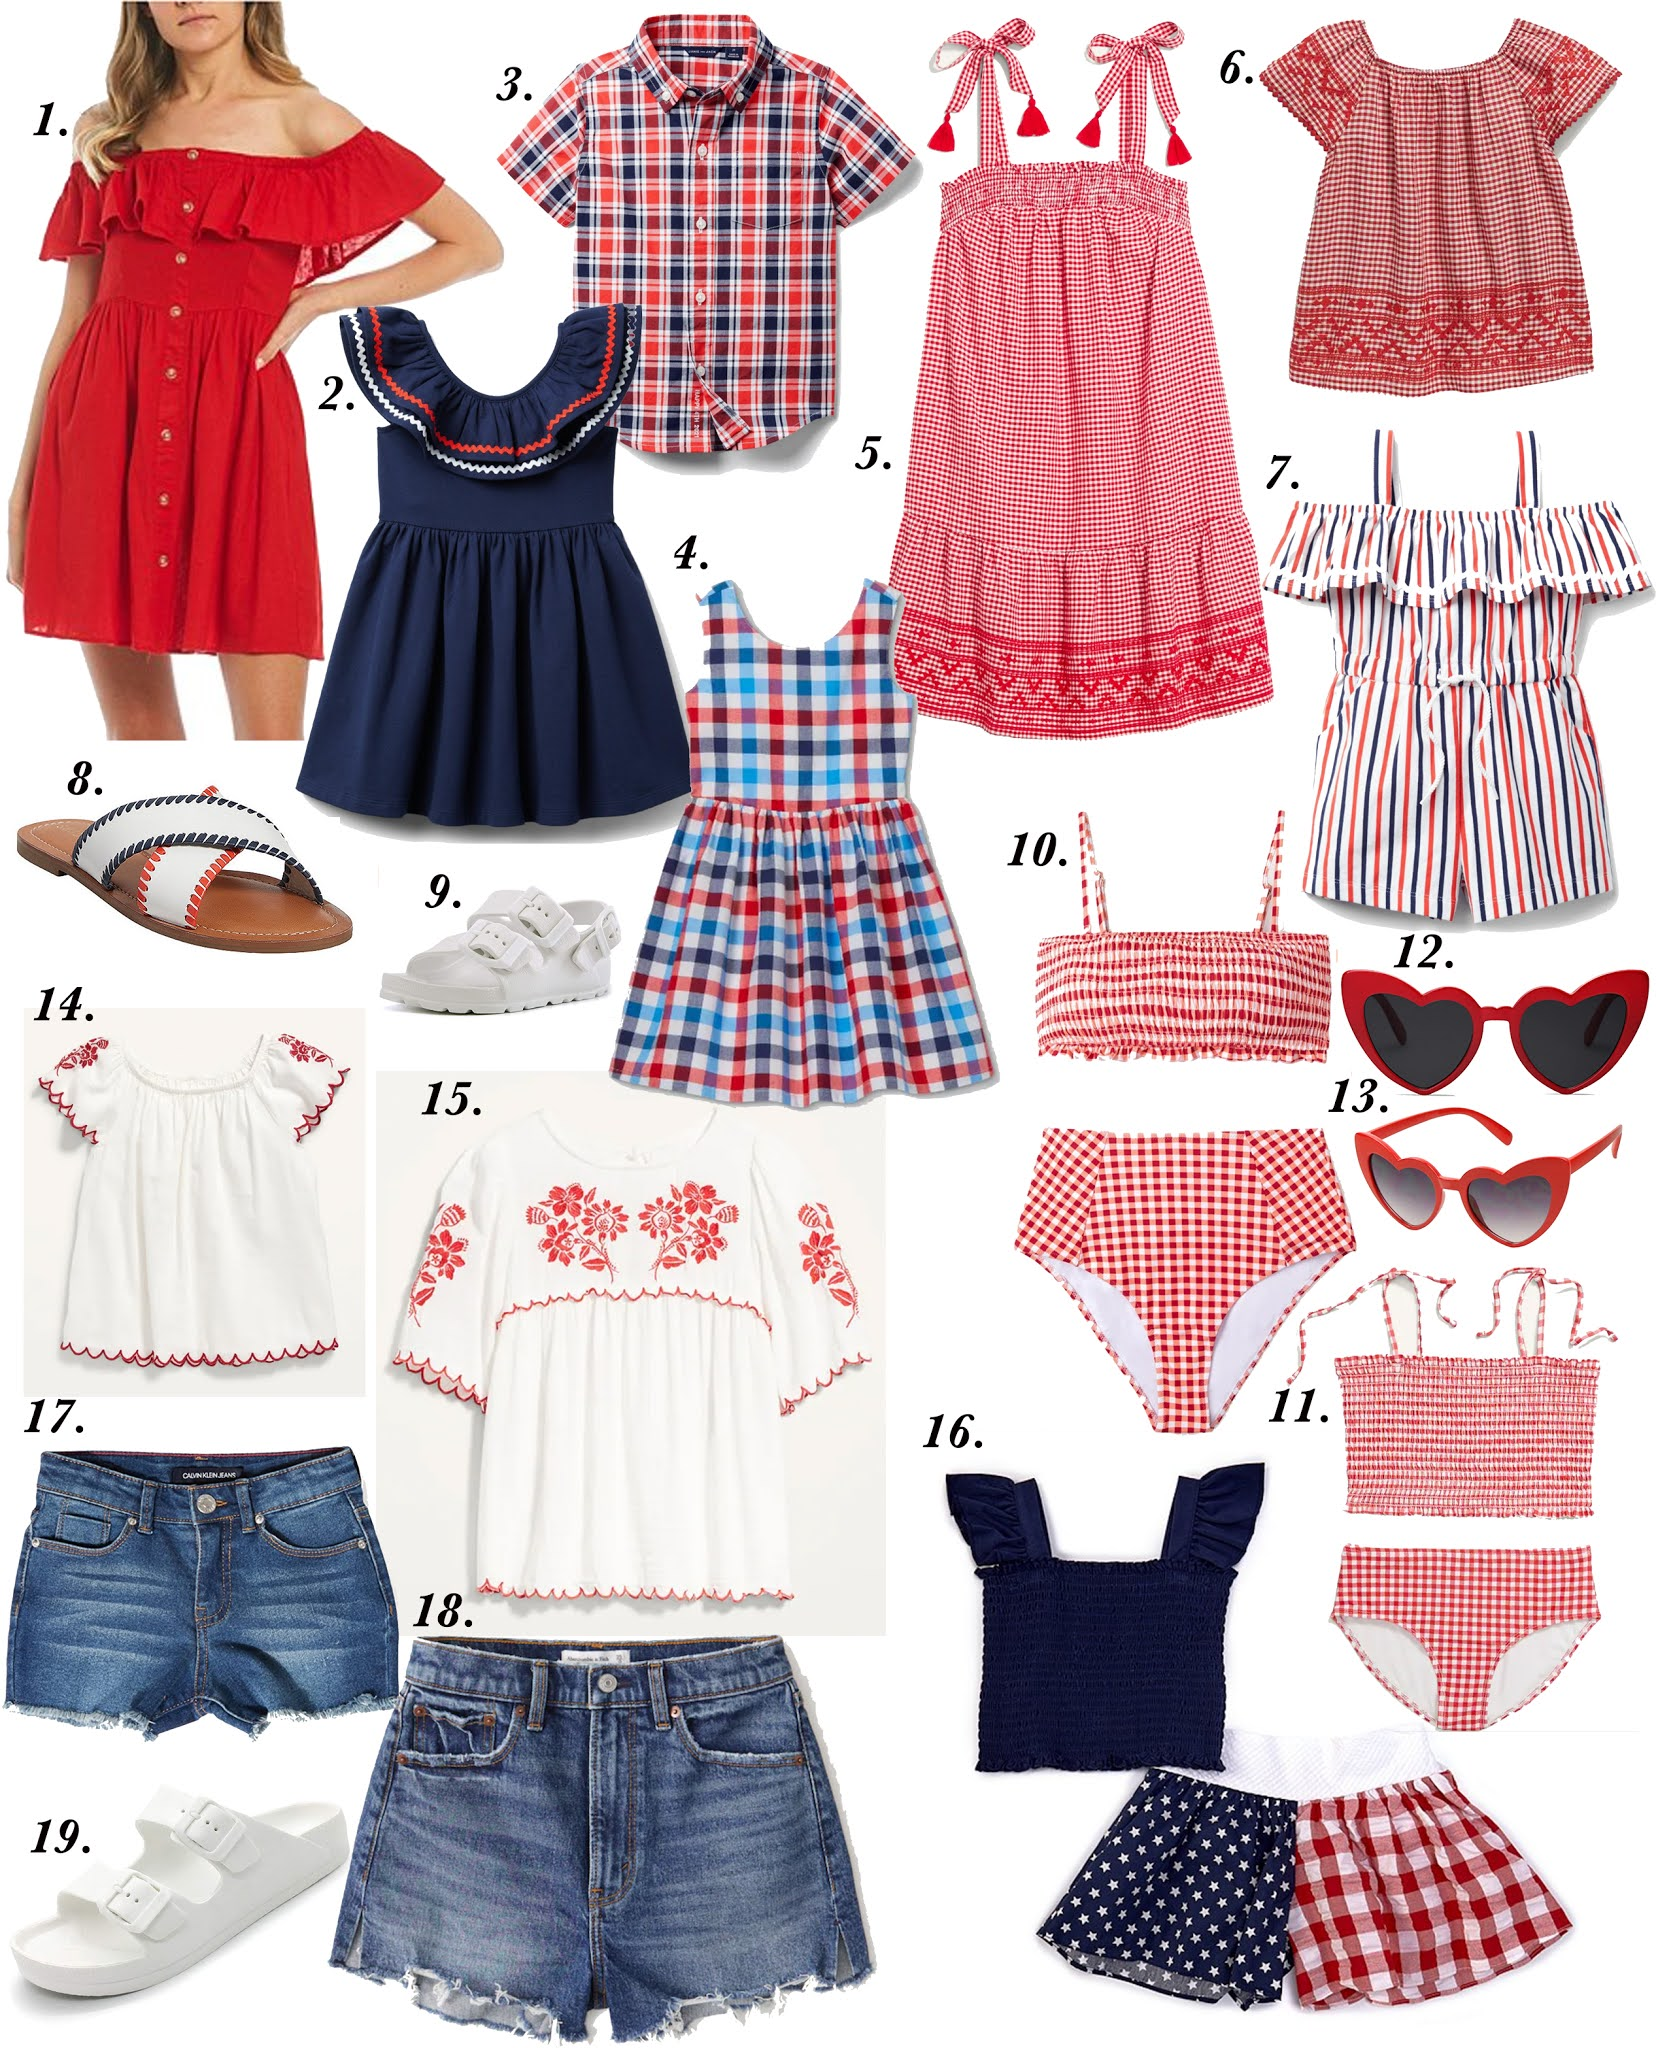 Patriotic Finds for the Family - Something Delightful Blog #memorialdayootd #patrioticoutfit #July4thootd #redwhiteandblue